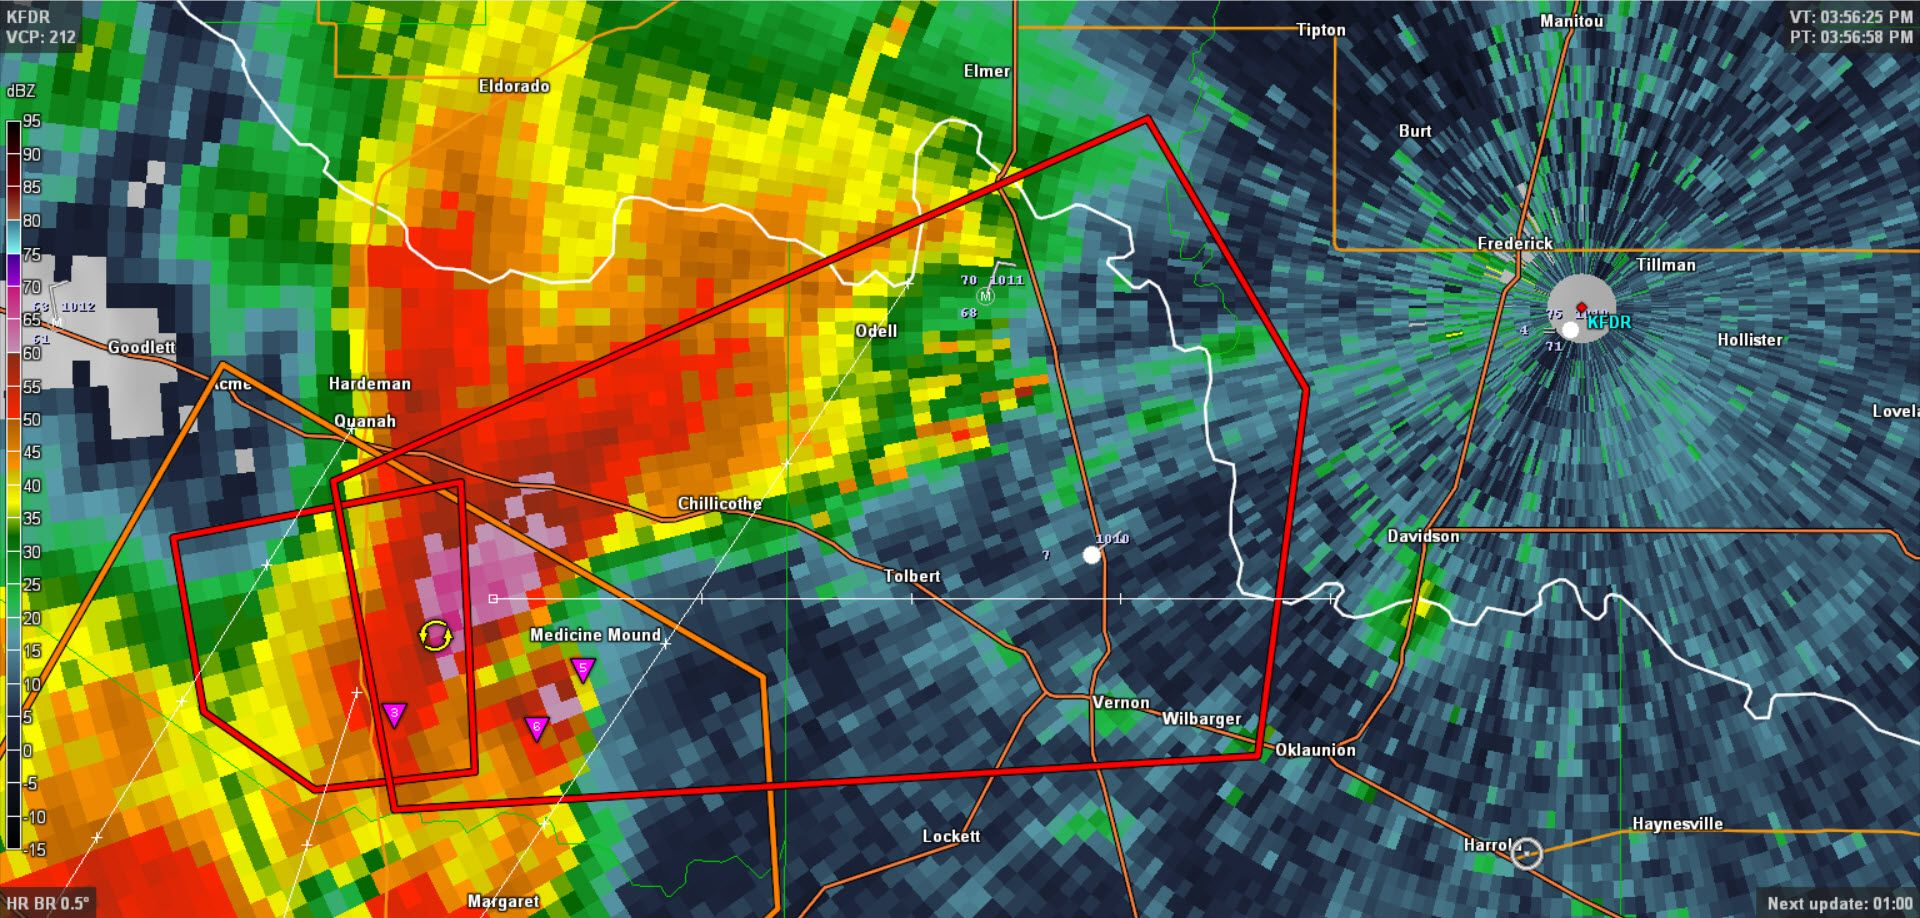 Pin by texas storm chasers on texas storm chasers content